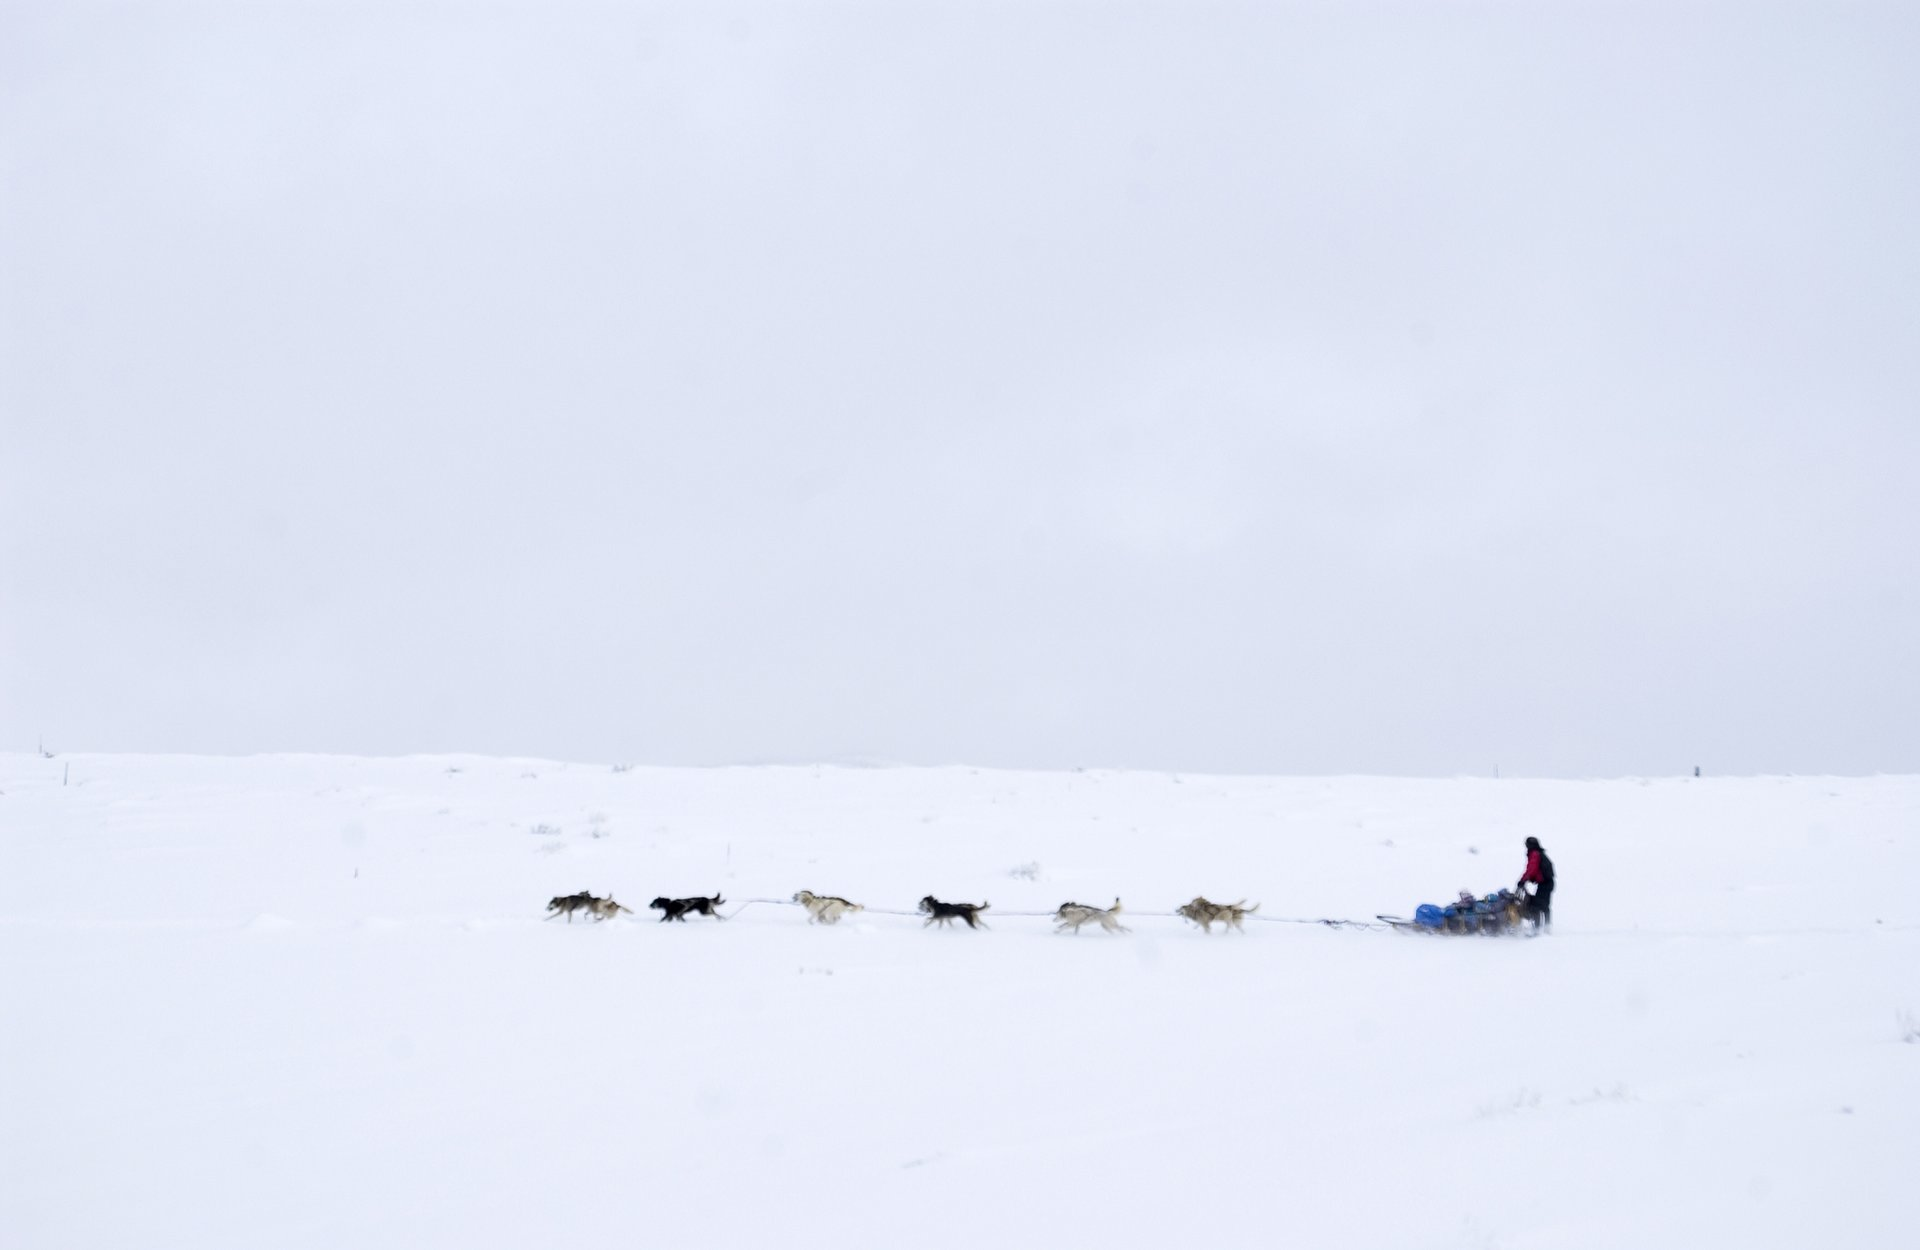 A sled dog team pulls its passengers through a winter landscape near Edwards 2020